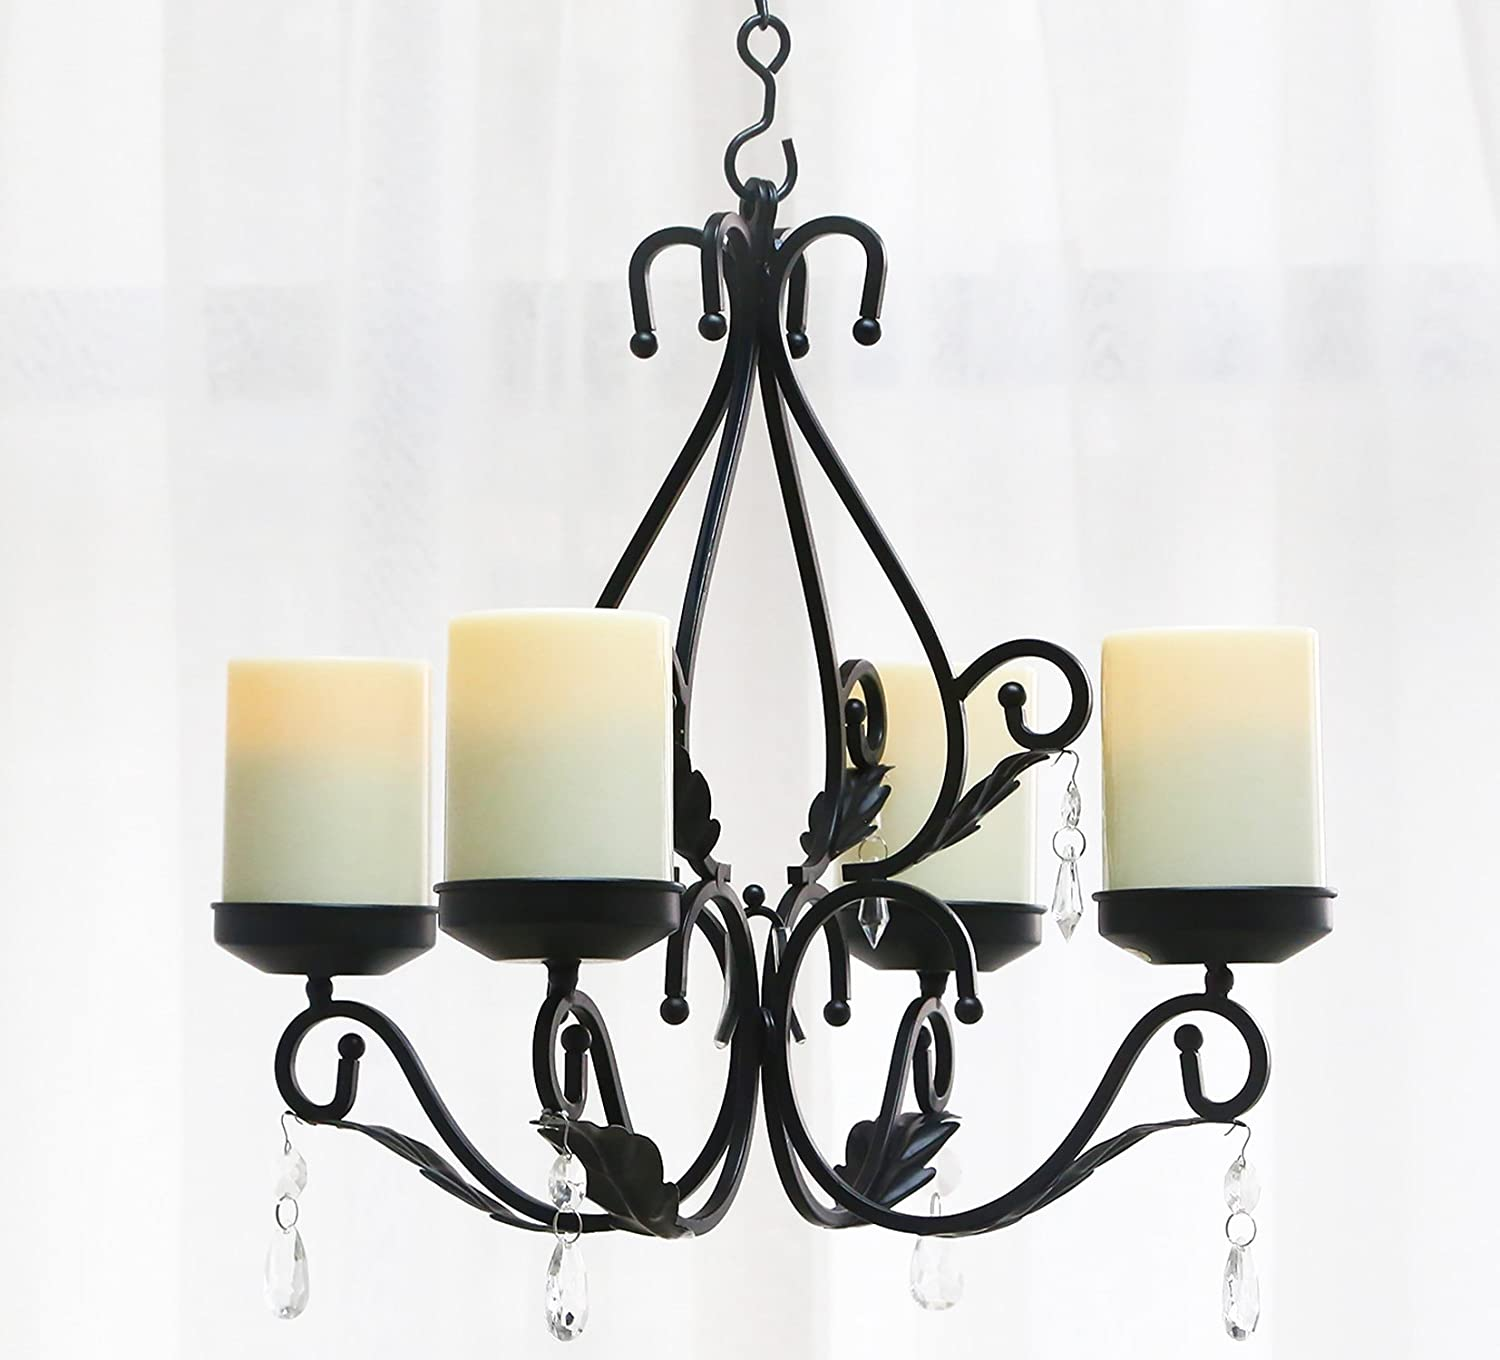 GiveU 3 IN 1 Lighting Chandelier, Metal Wall Sconce Set of 2, Table Centerpiece for Indoor or Outdoor, Chain and Candles Included, Black